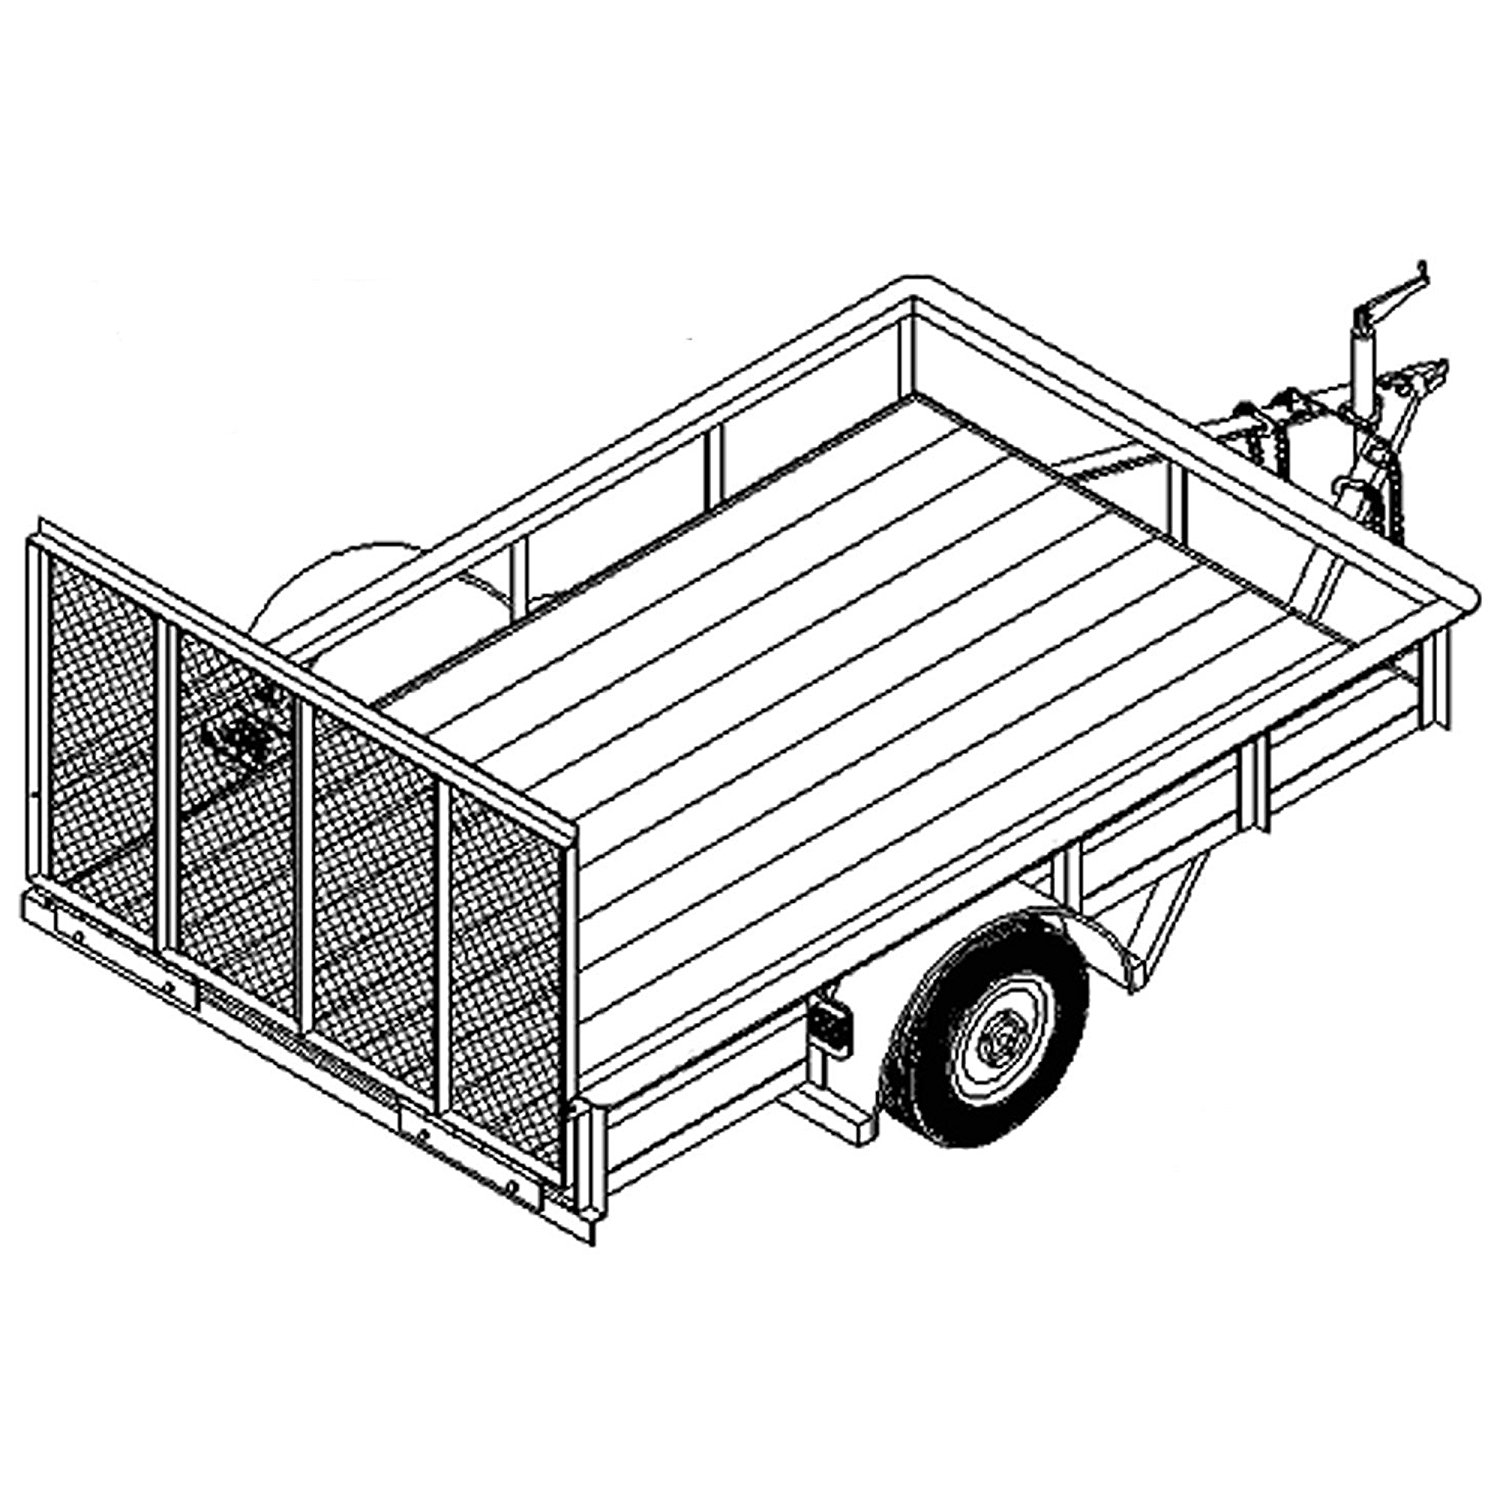 trailer truck drawing at getdrawings com